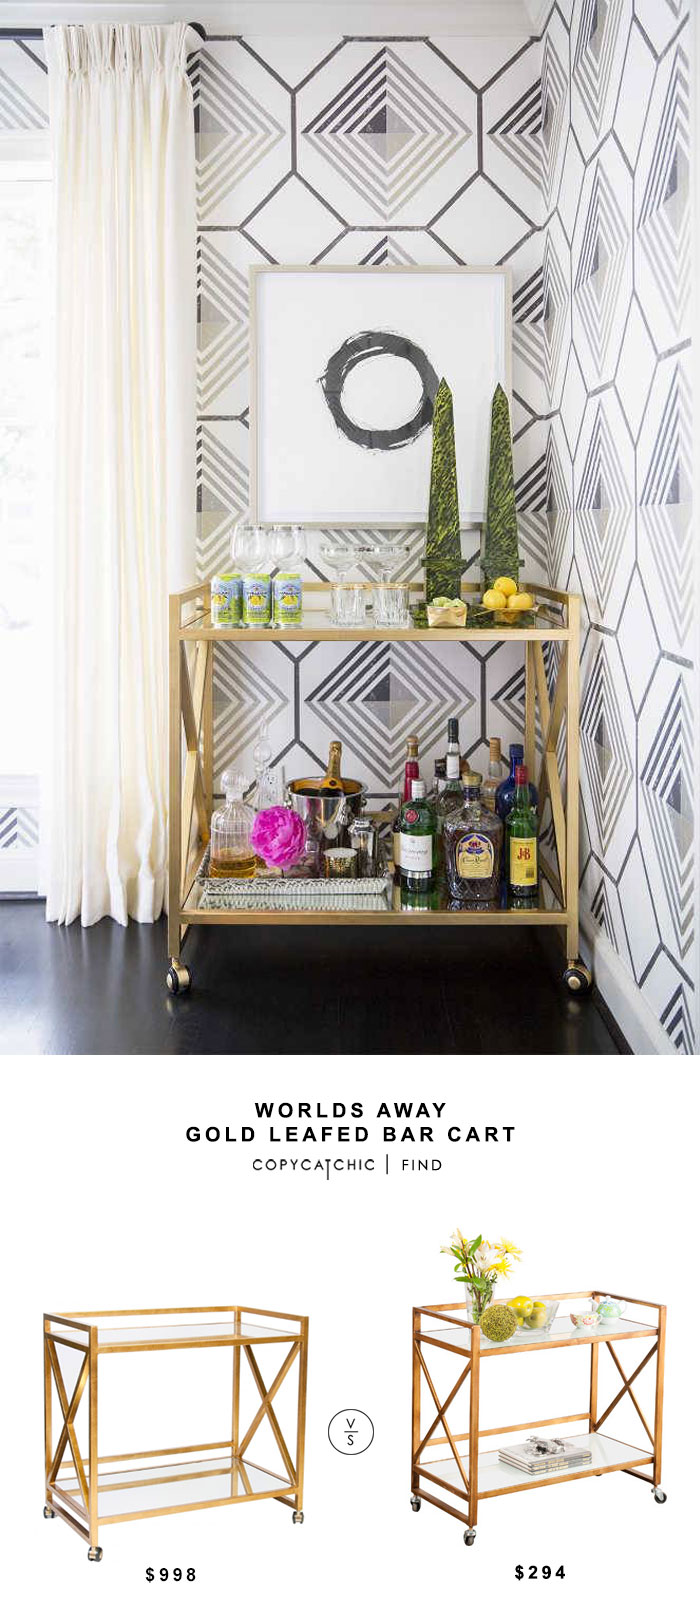 Worlds Away Gold Leafed Bar Cart Copy Cat Chic